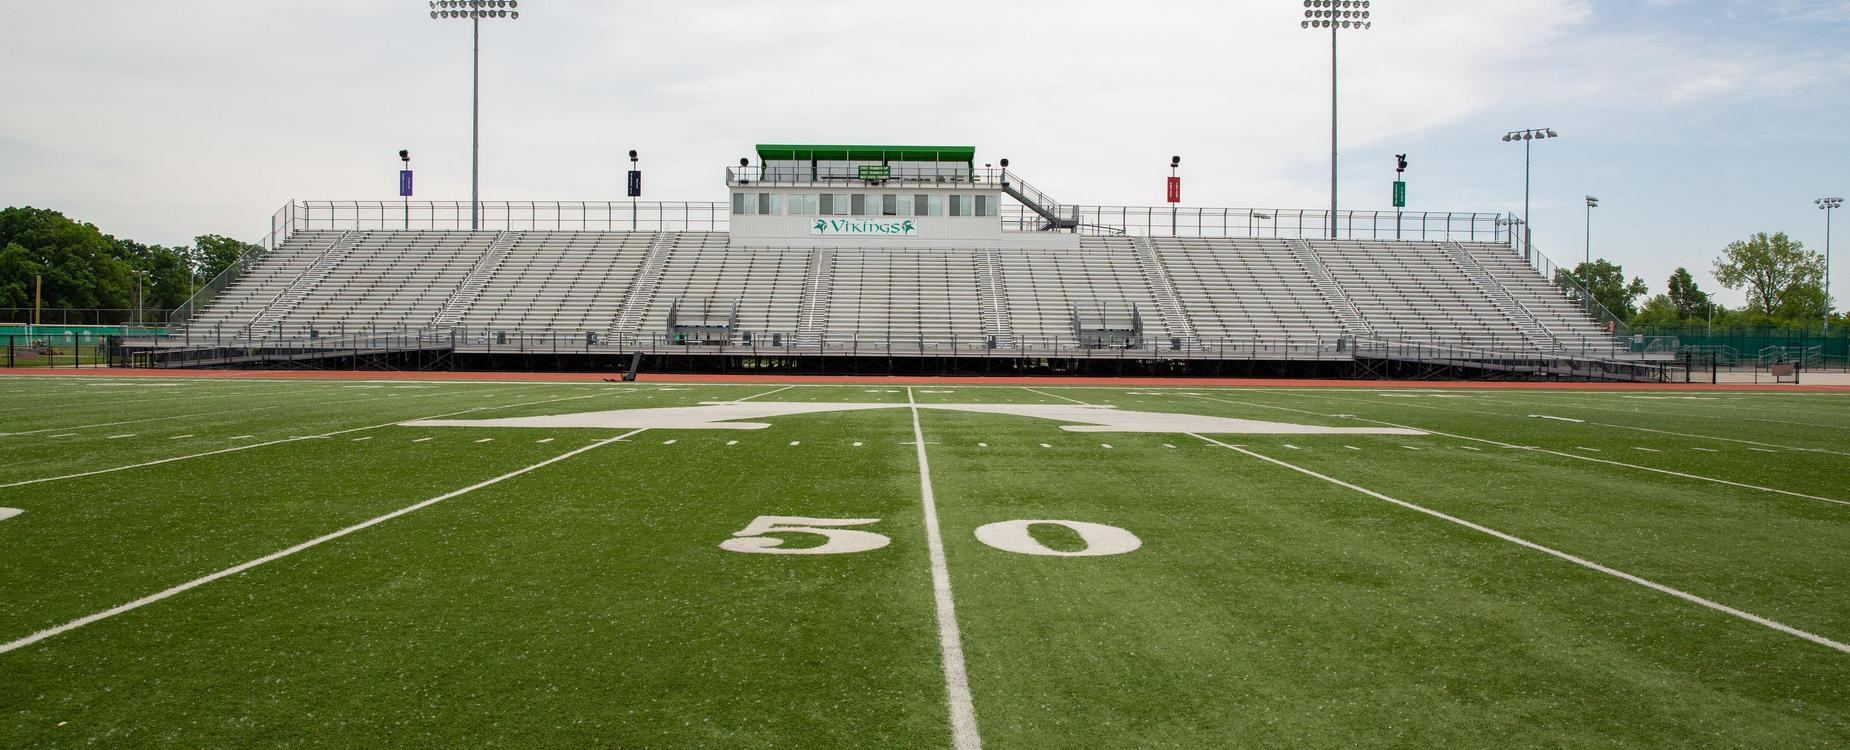 Viking Football Field 50 yard line and home bleachers